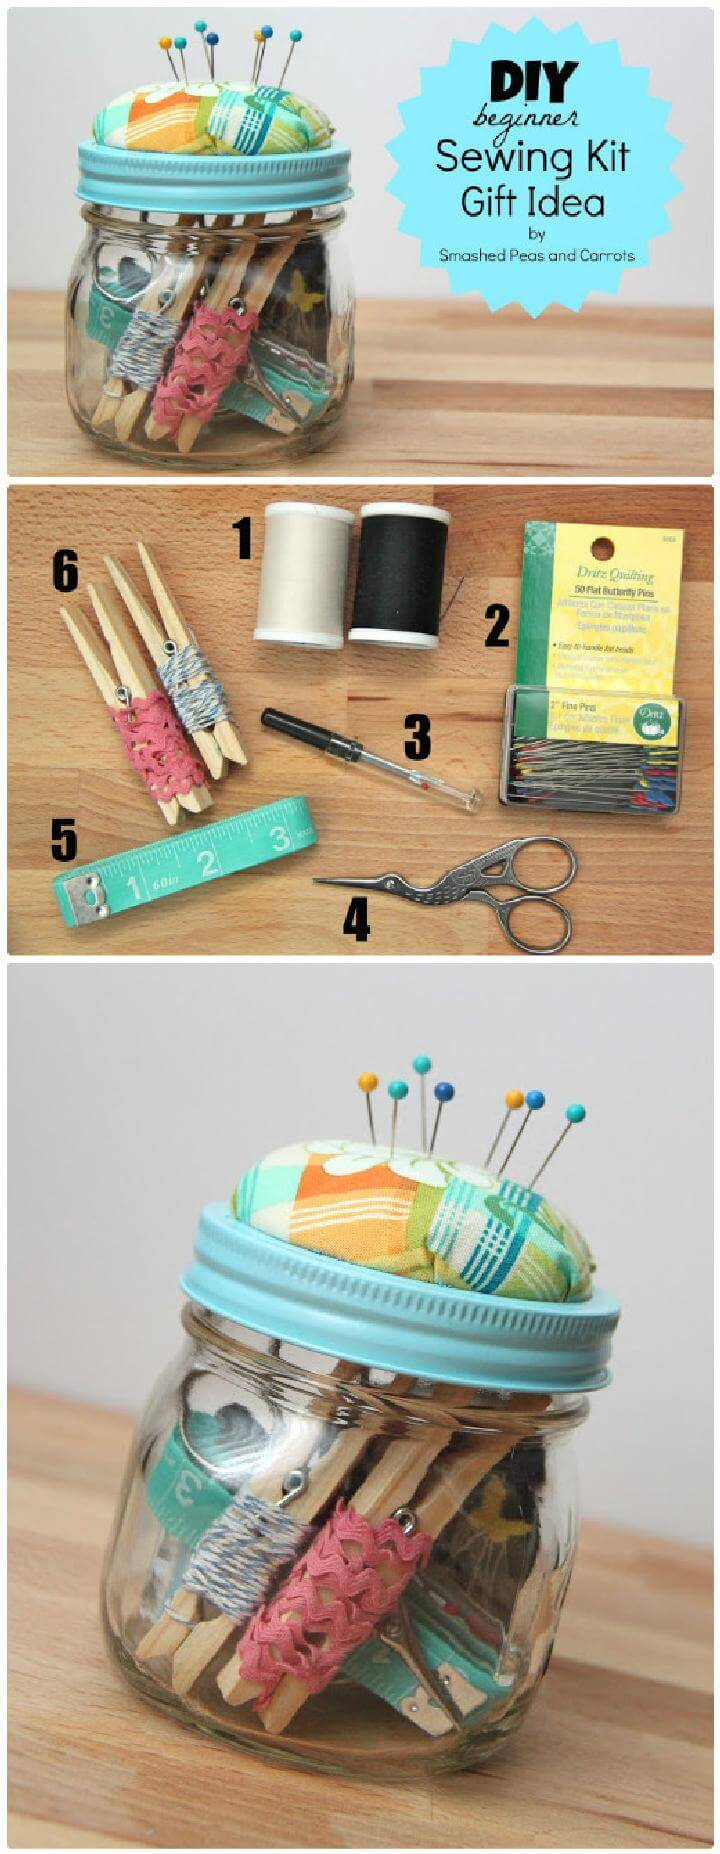 DIY Mason Jar Sewing Kit Gift for Beginners